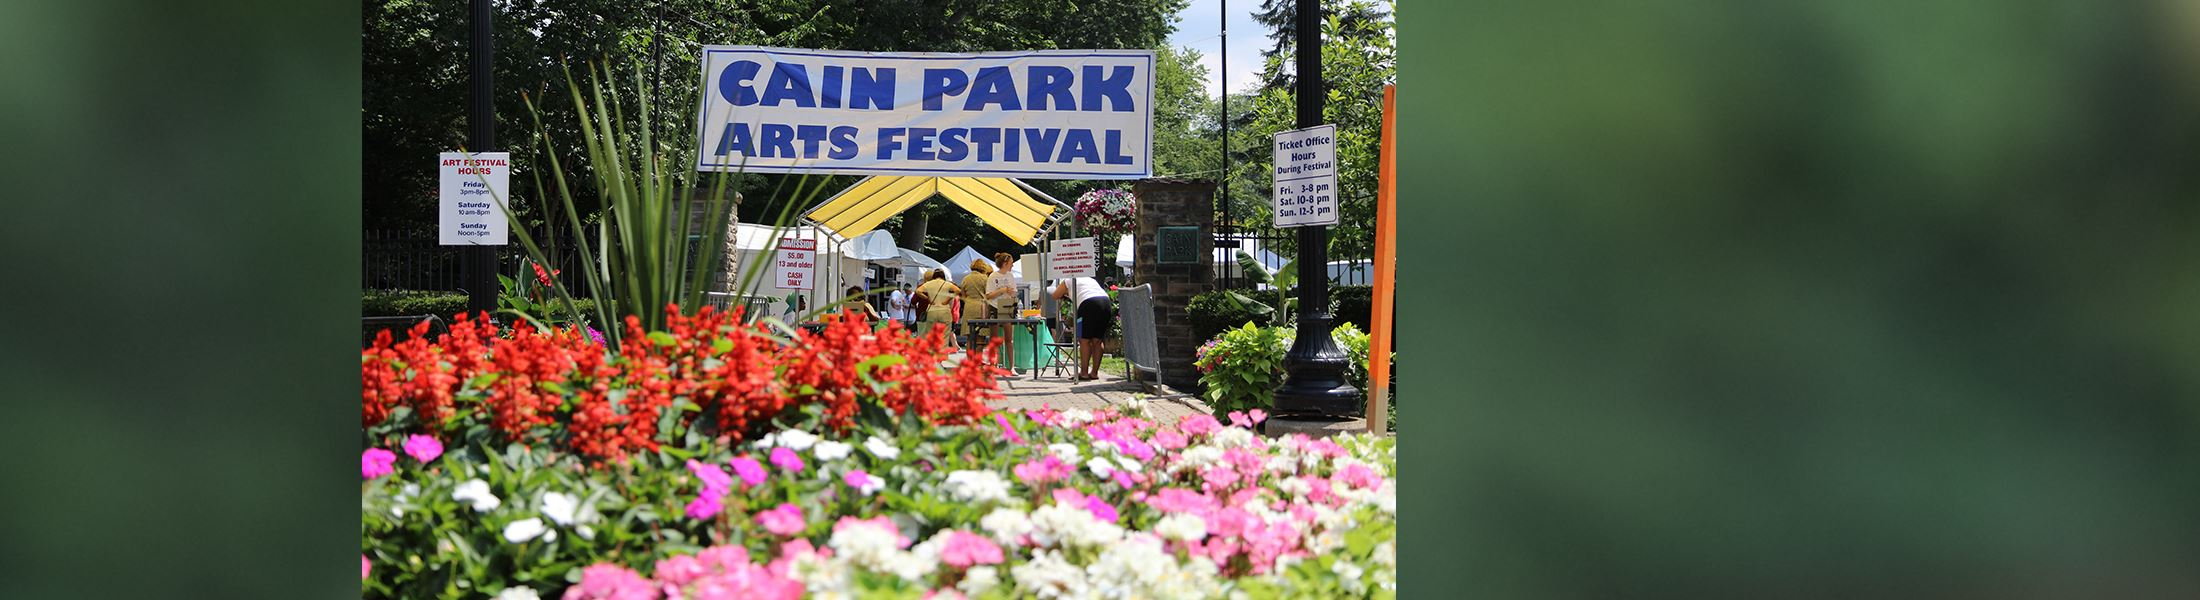 Image of Cain Park Arts Festival Lee Road entrance